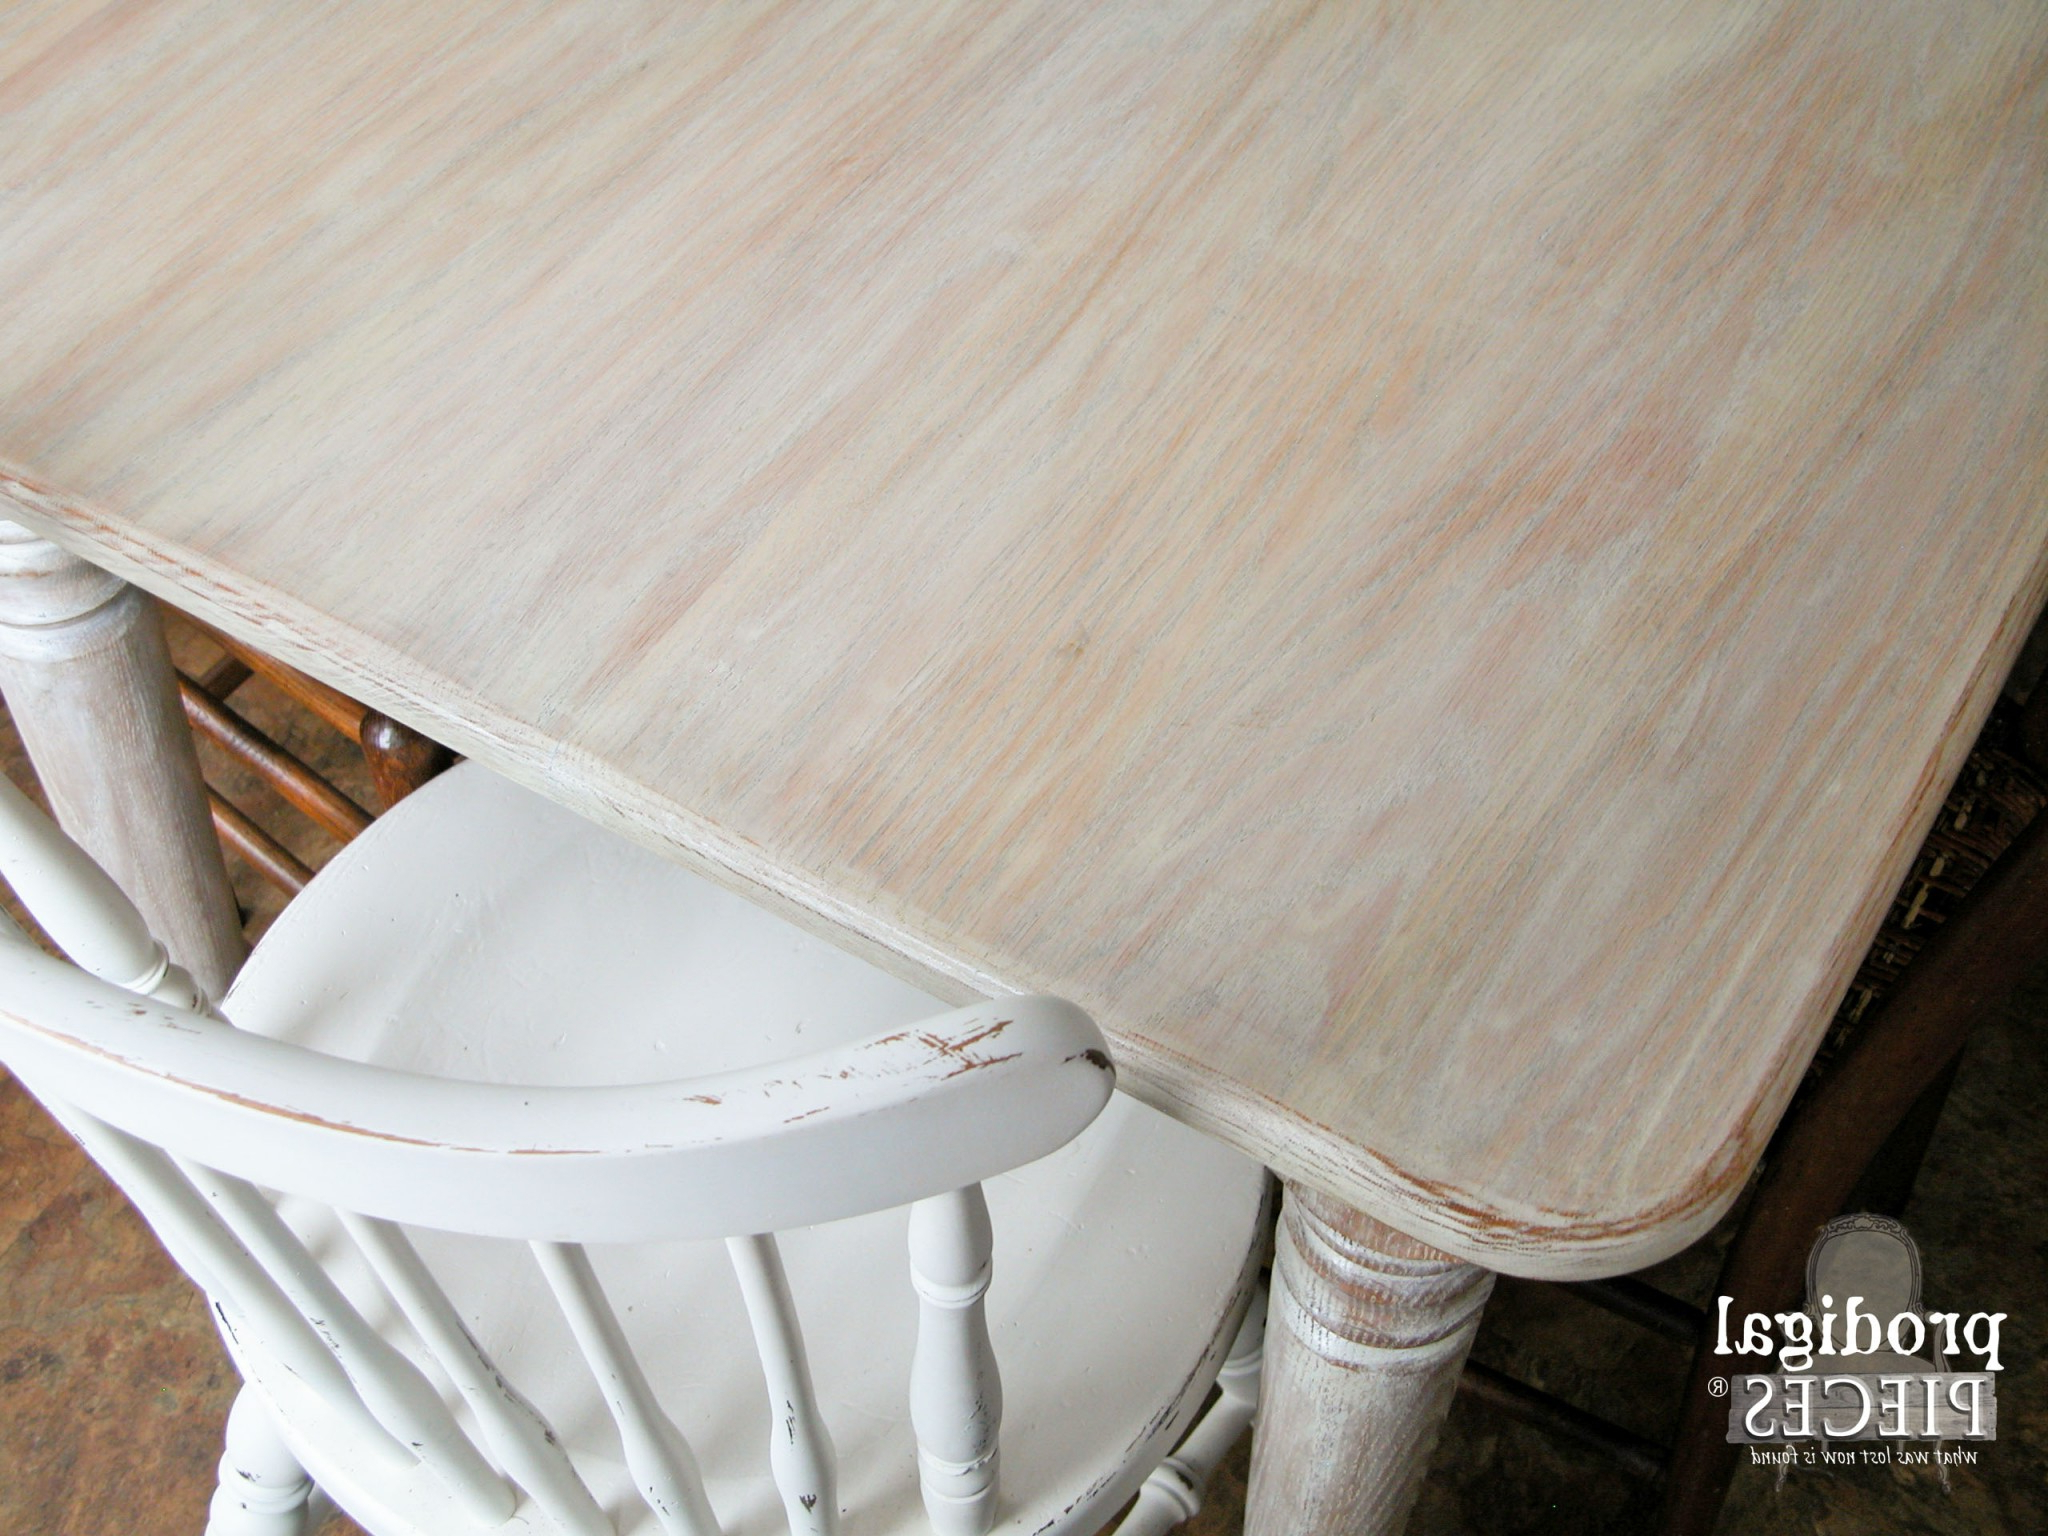 Whitewashed (Or Limewashed) Wood – Prodigal Pieces Intended For Most Recent Handmade Whitewashed Stripped Wood Tables (View 17 of 20)